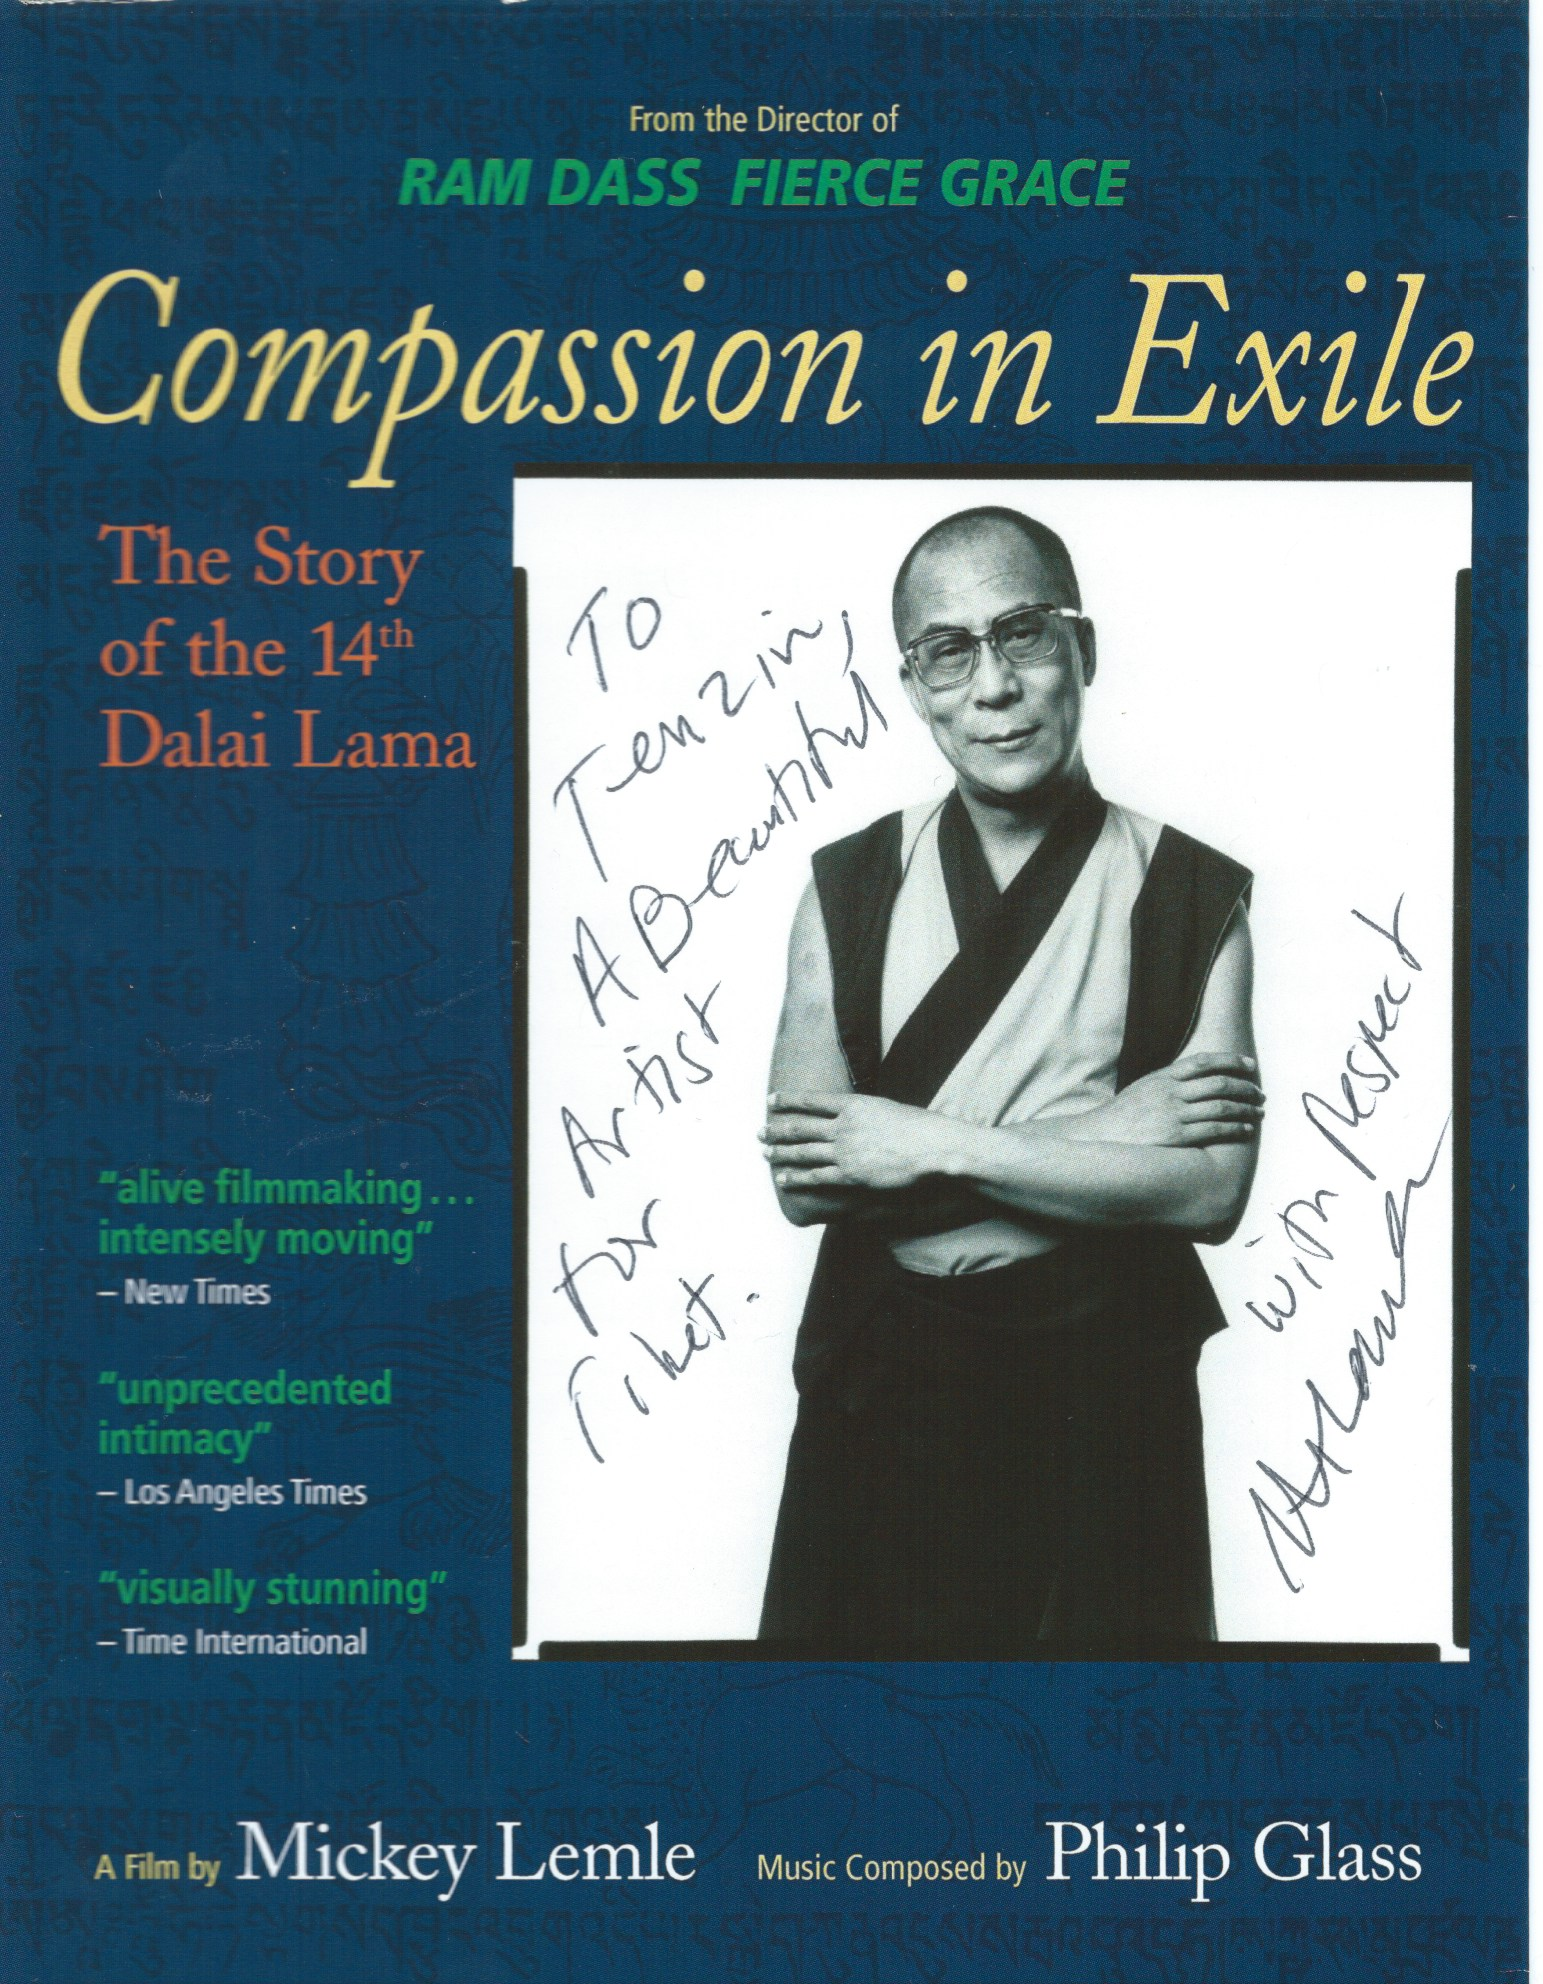 the ethic of compassion dalai lama essay 91 121 113 106 the ethic of compassion dalai lama essay